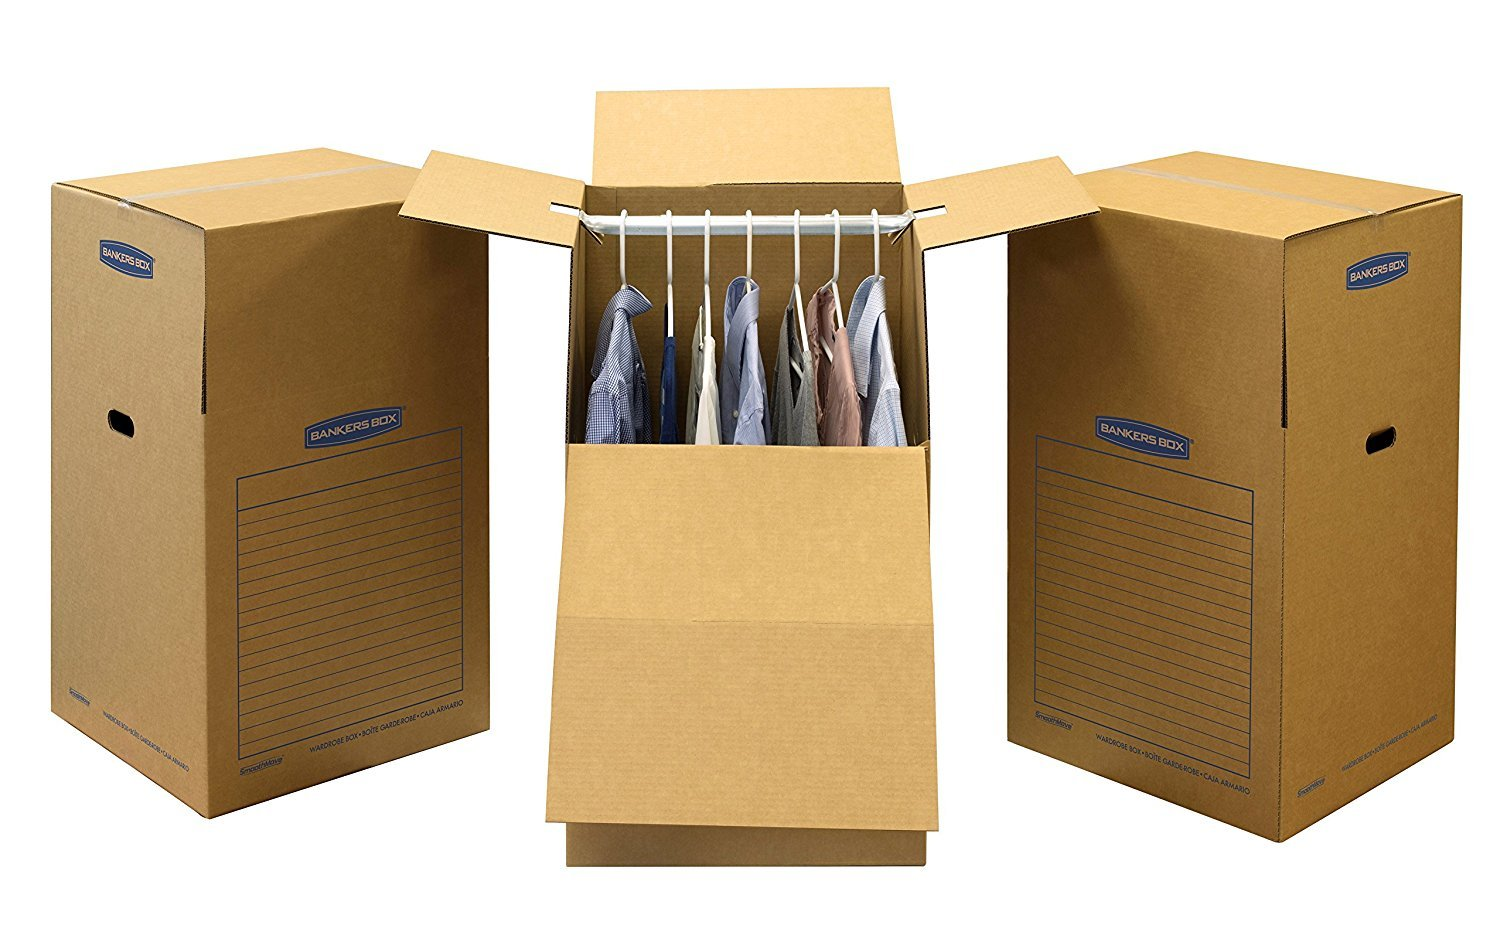 4 X Pack of 3 24 x 24 x 40 Inches, Tall 7711001 Bankers Box SmoothMove Wardrobe Moving Boxes